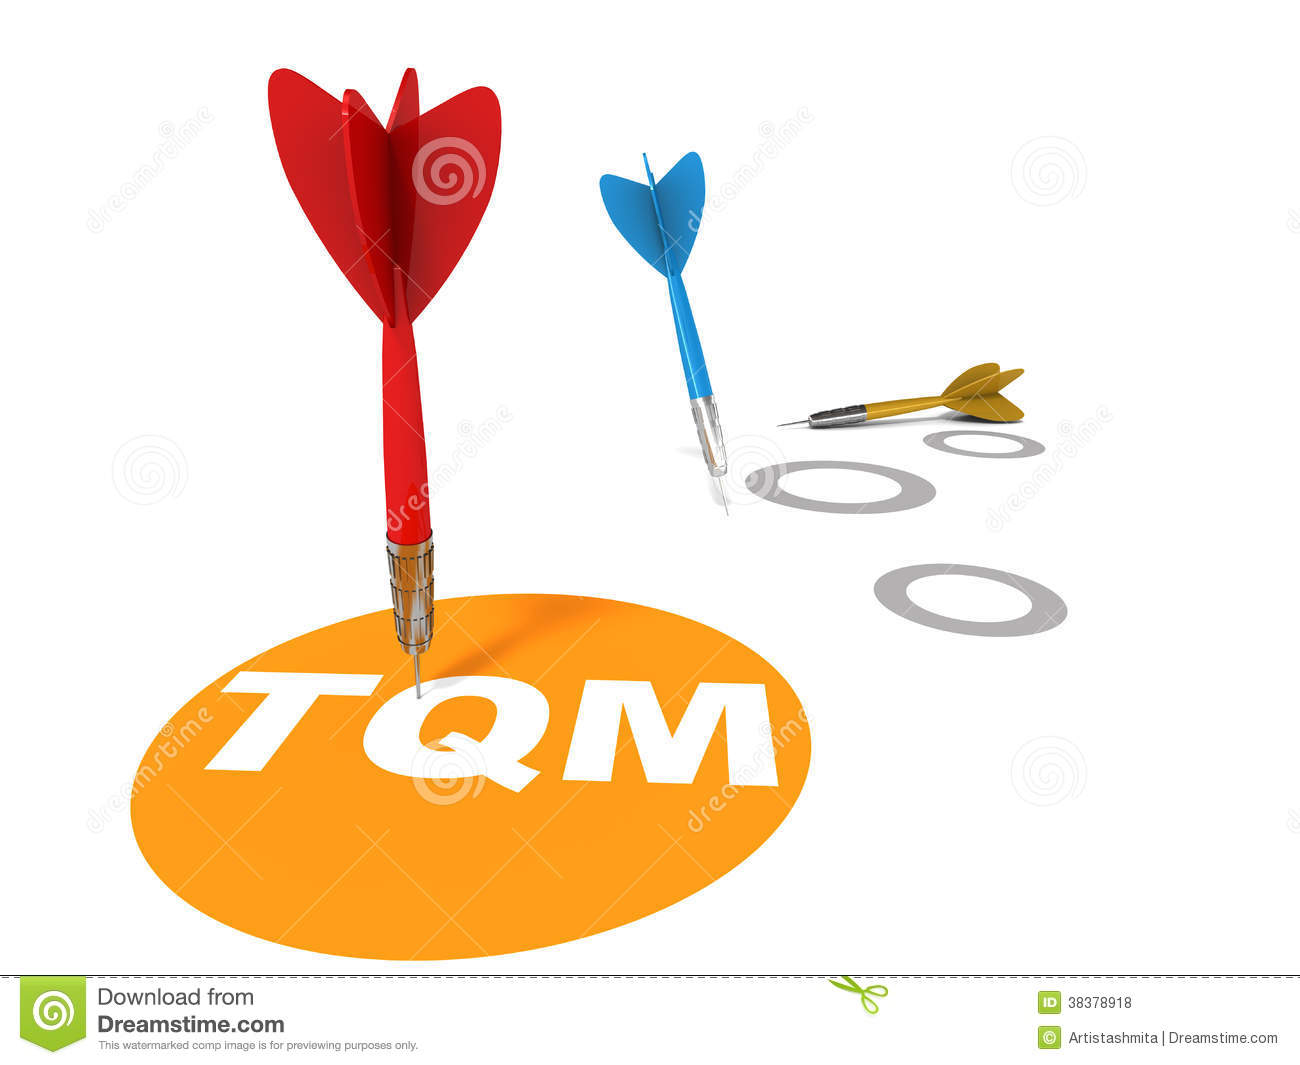 total quality Effective total quality management (tqm) programs integrated, to improve quality, at all levels customers a product's quality standard is best defined by: satisfies design tolerances a product that conforms to specifications if it support services.